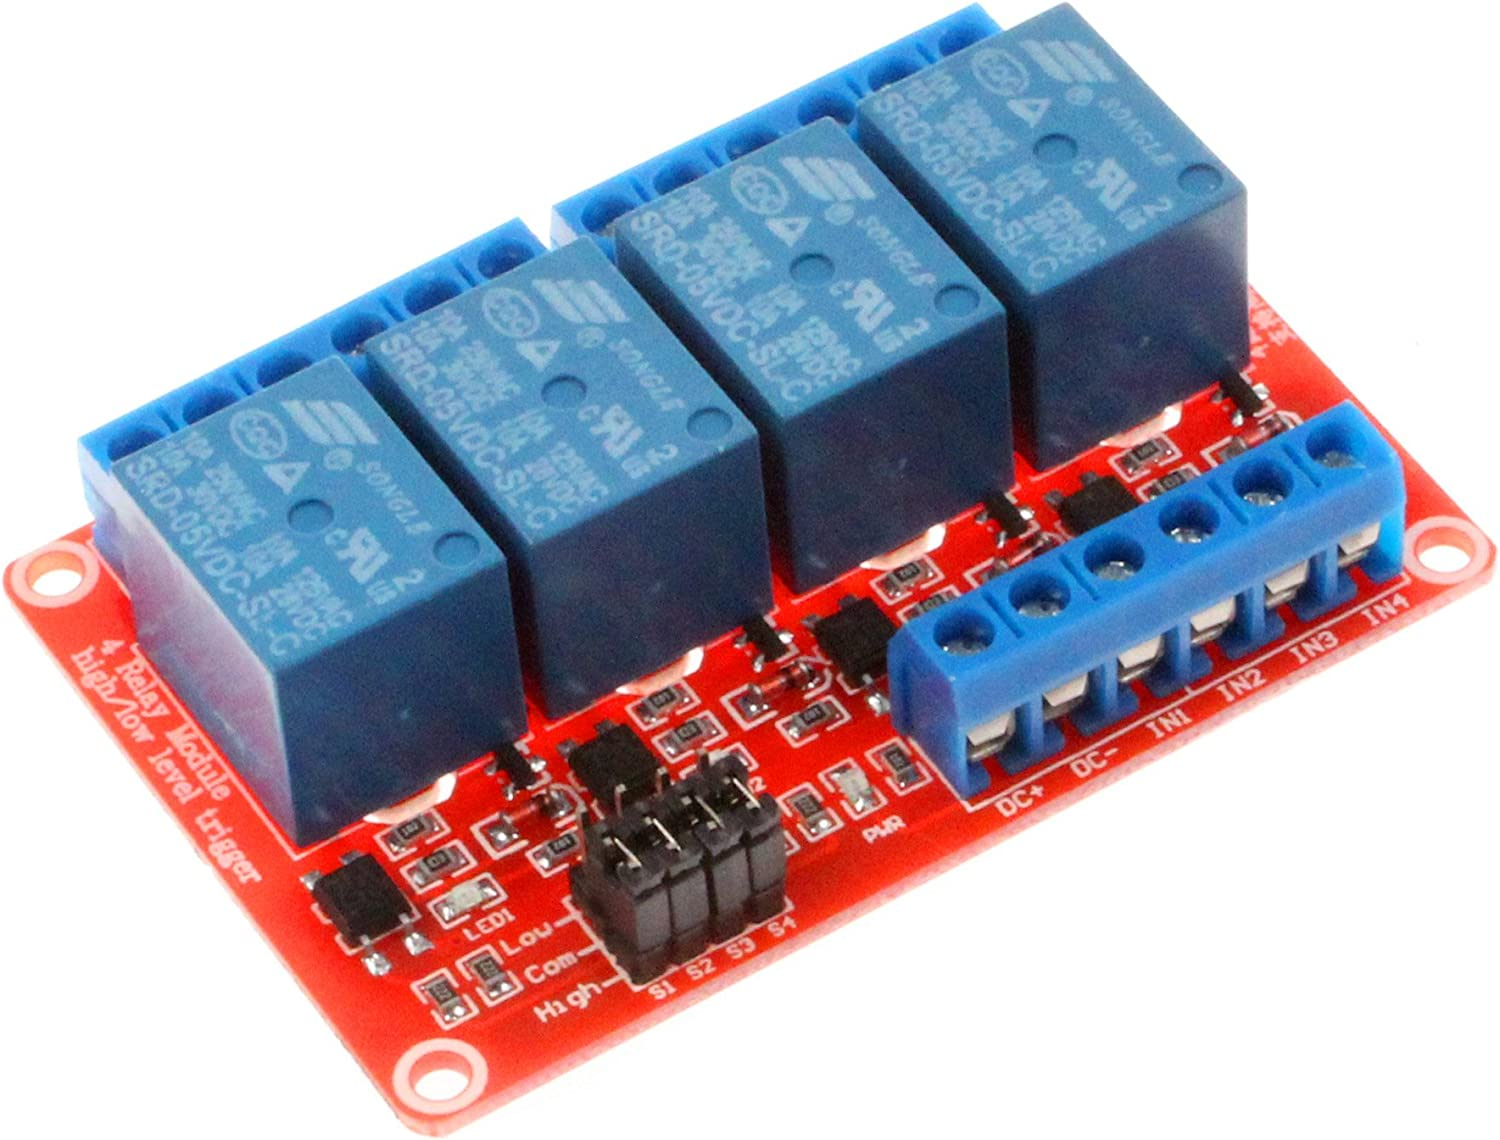 NOYITO New product 4 Channel Relay Module High Trigger Max 88% OFF Low With Level Optoco